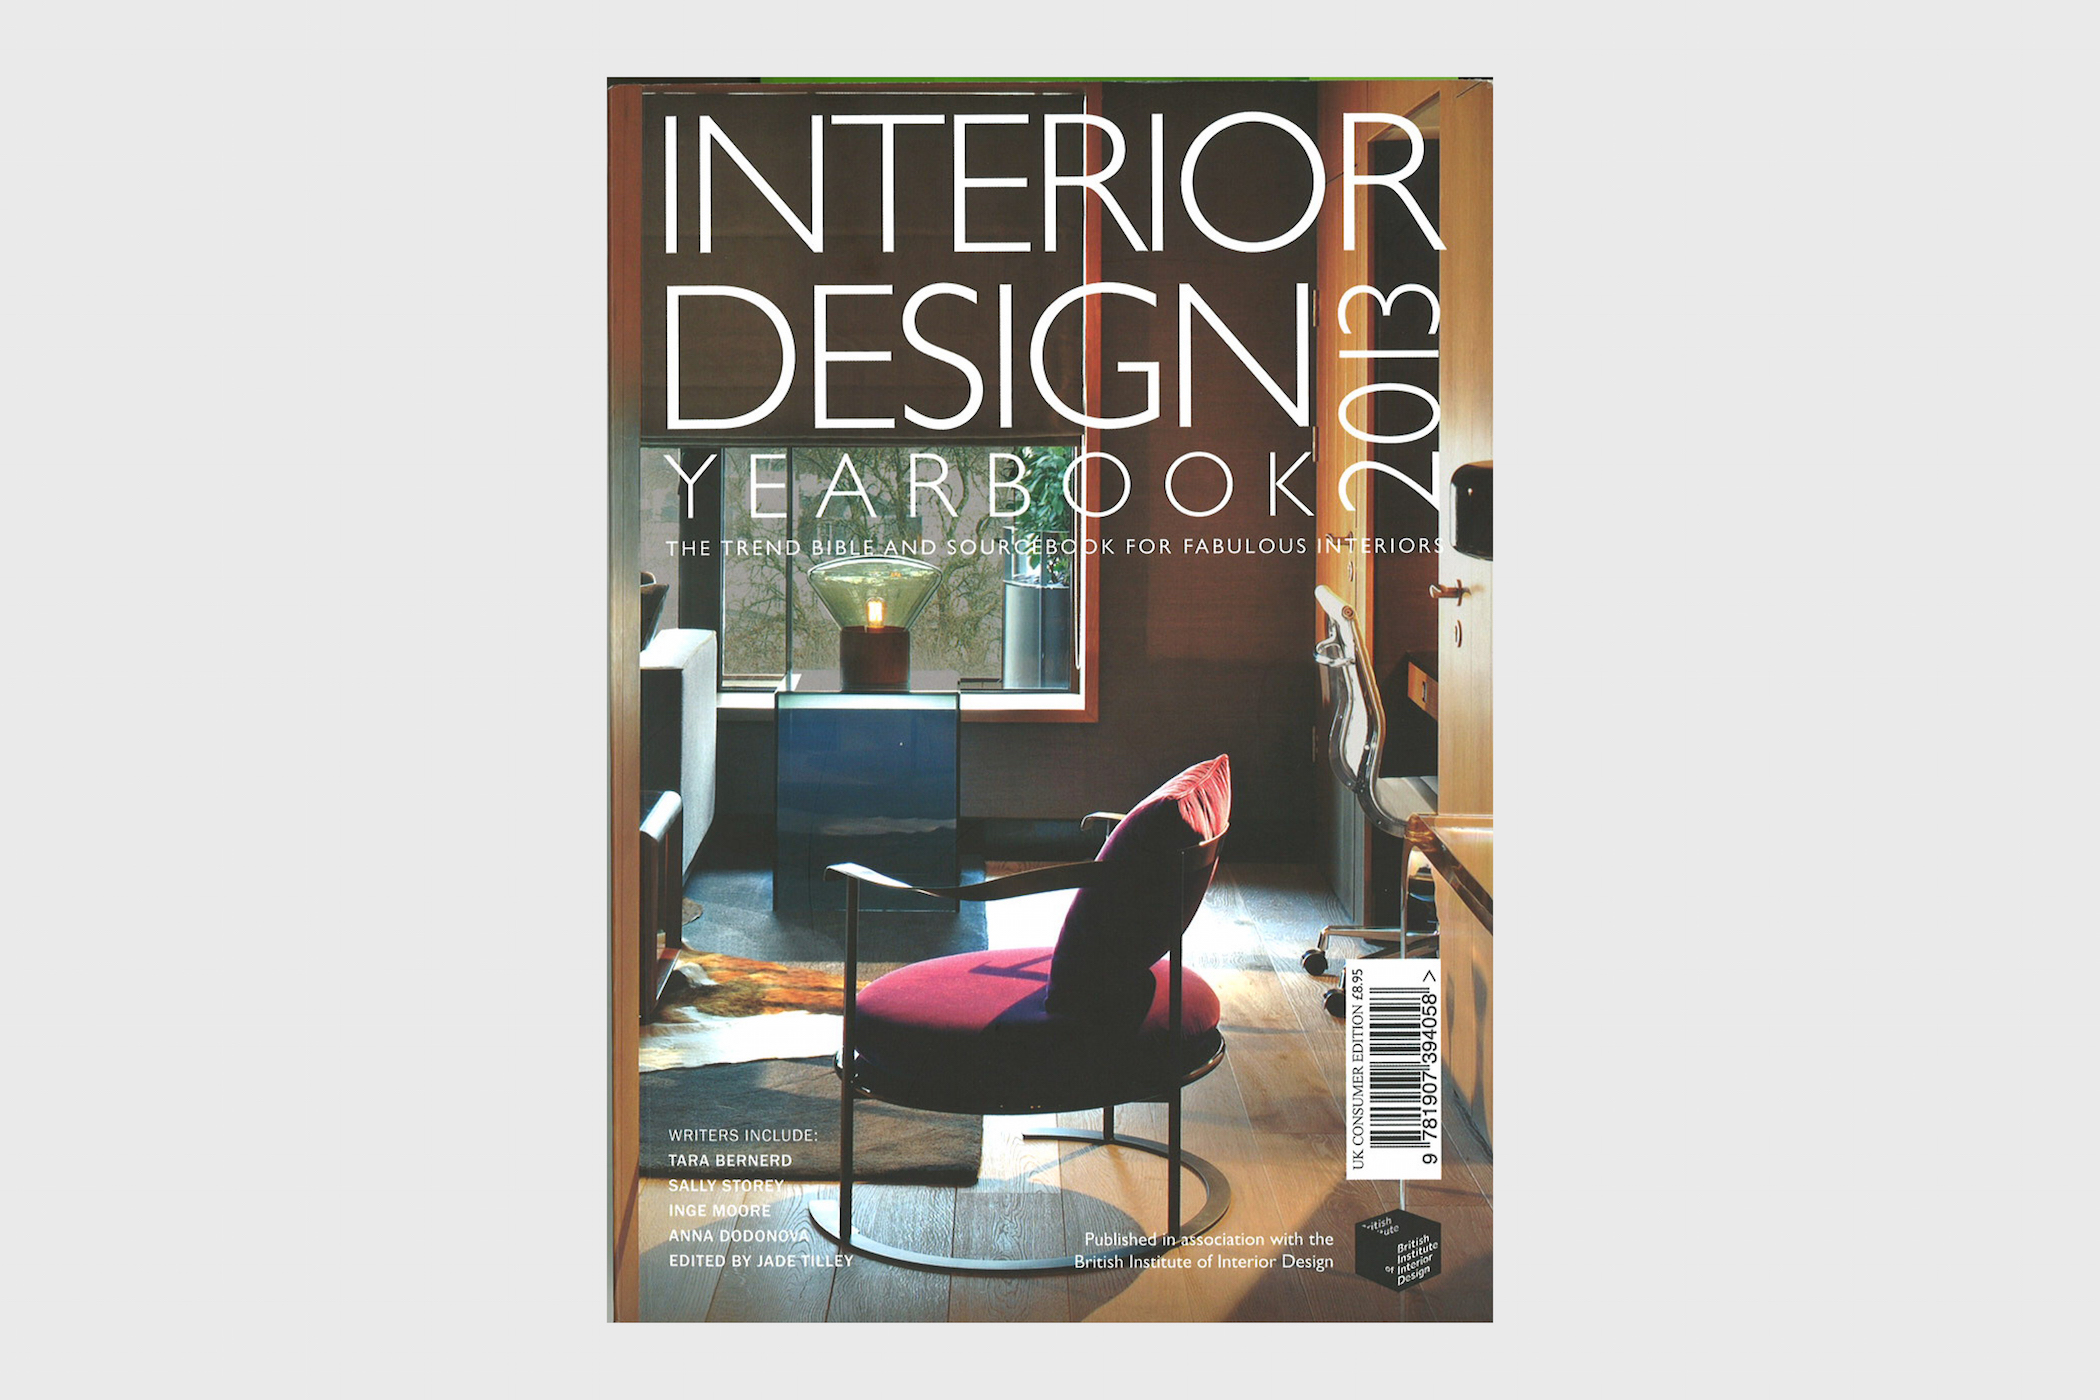 knof-press--interior-design-yearbook--2013_01.jpg